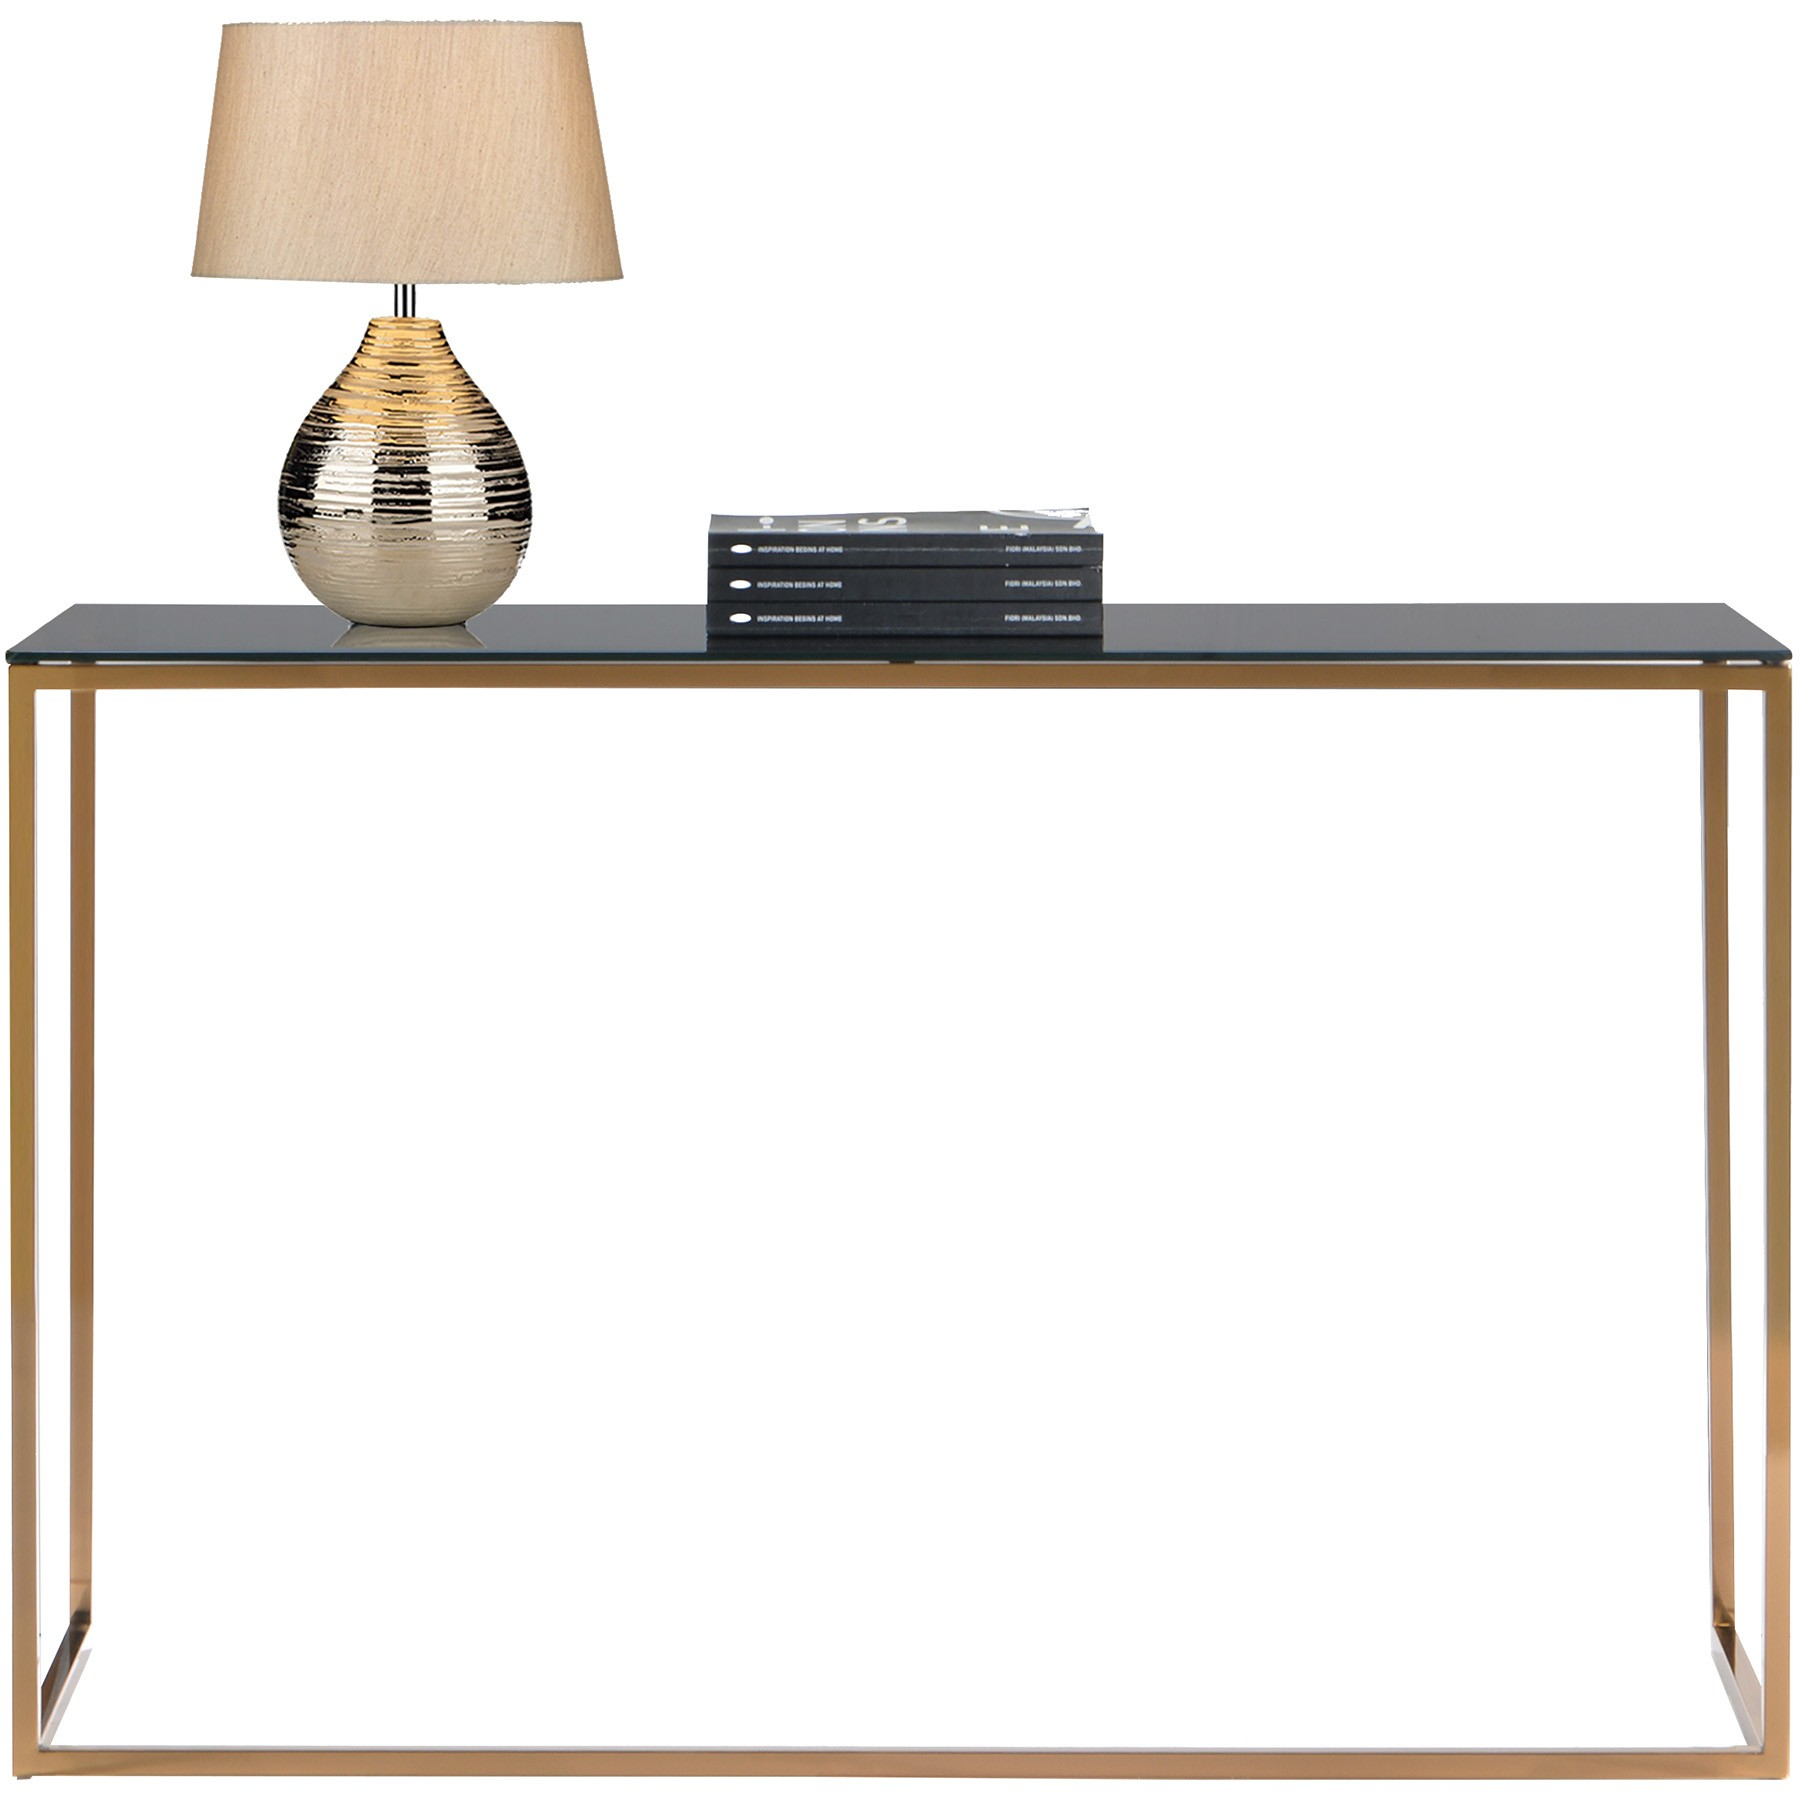 Kyra (126Cm Gold) Console Table With Tempered Glass Top Regarding Kyra Console Tables (Gallery 10 of 30)